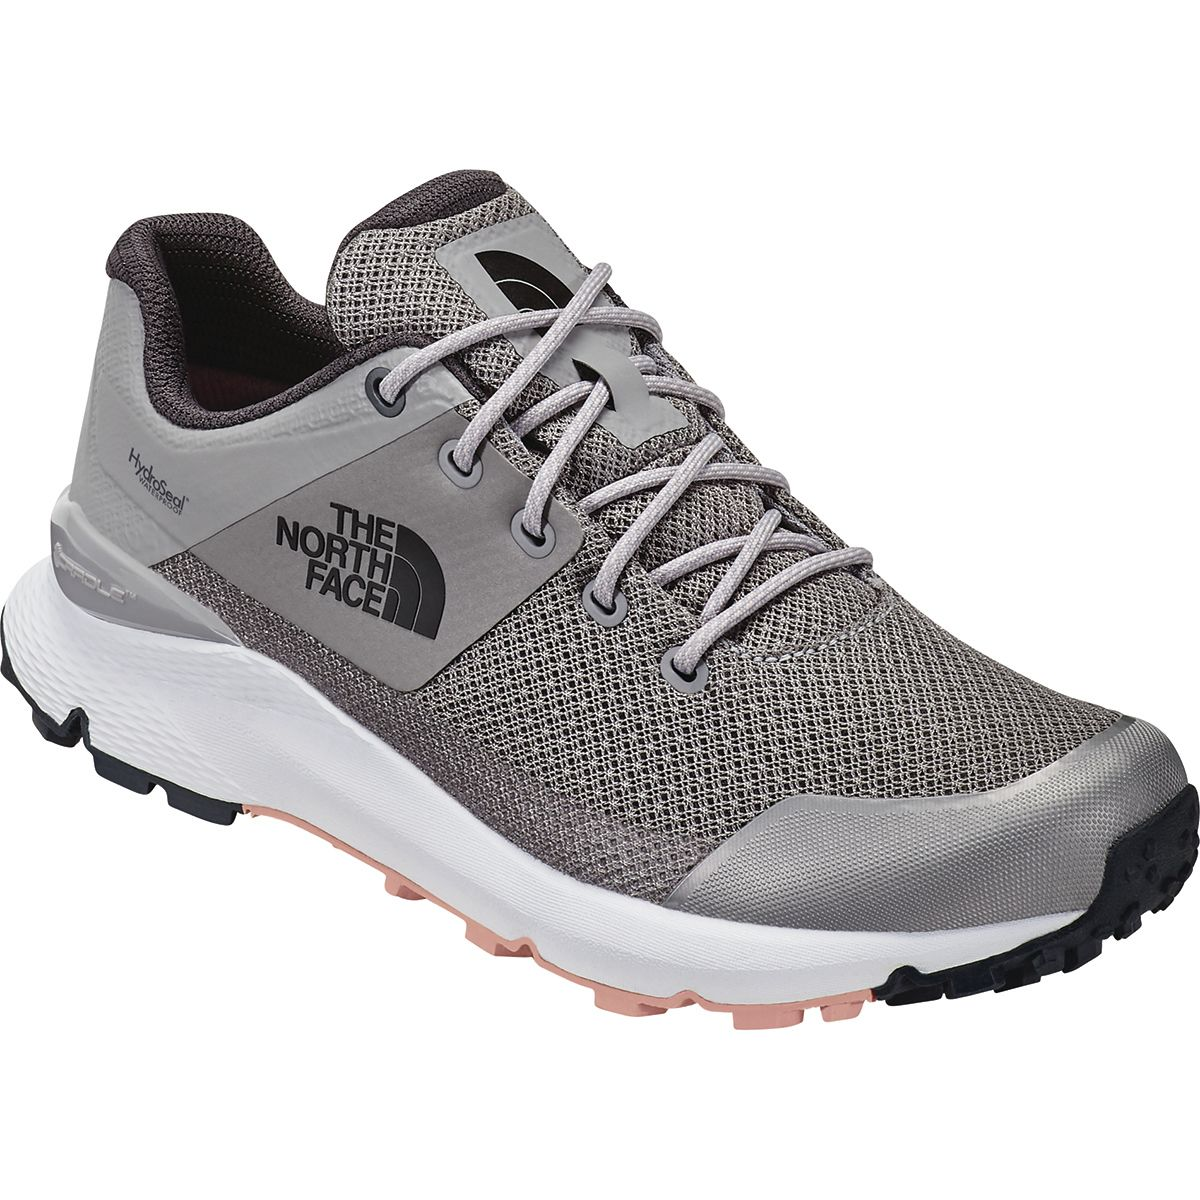 The North Face Vals WP Hiking Shoe